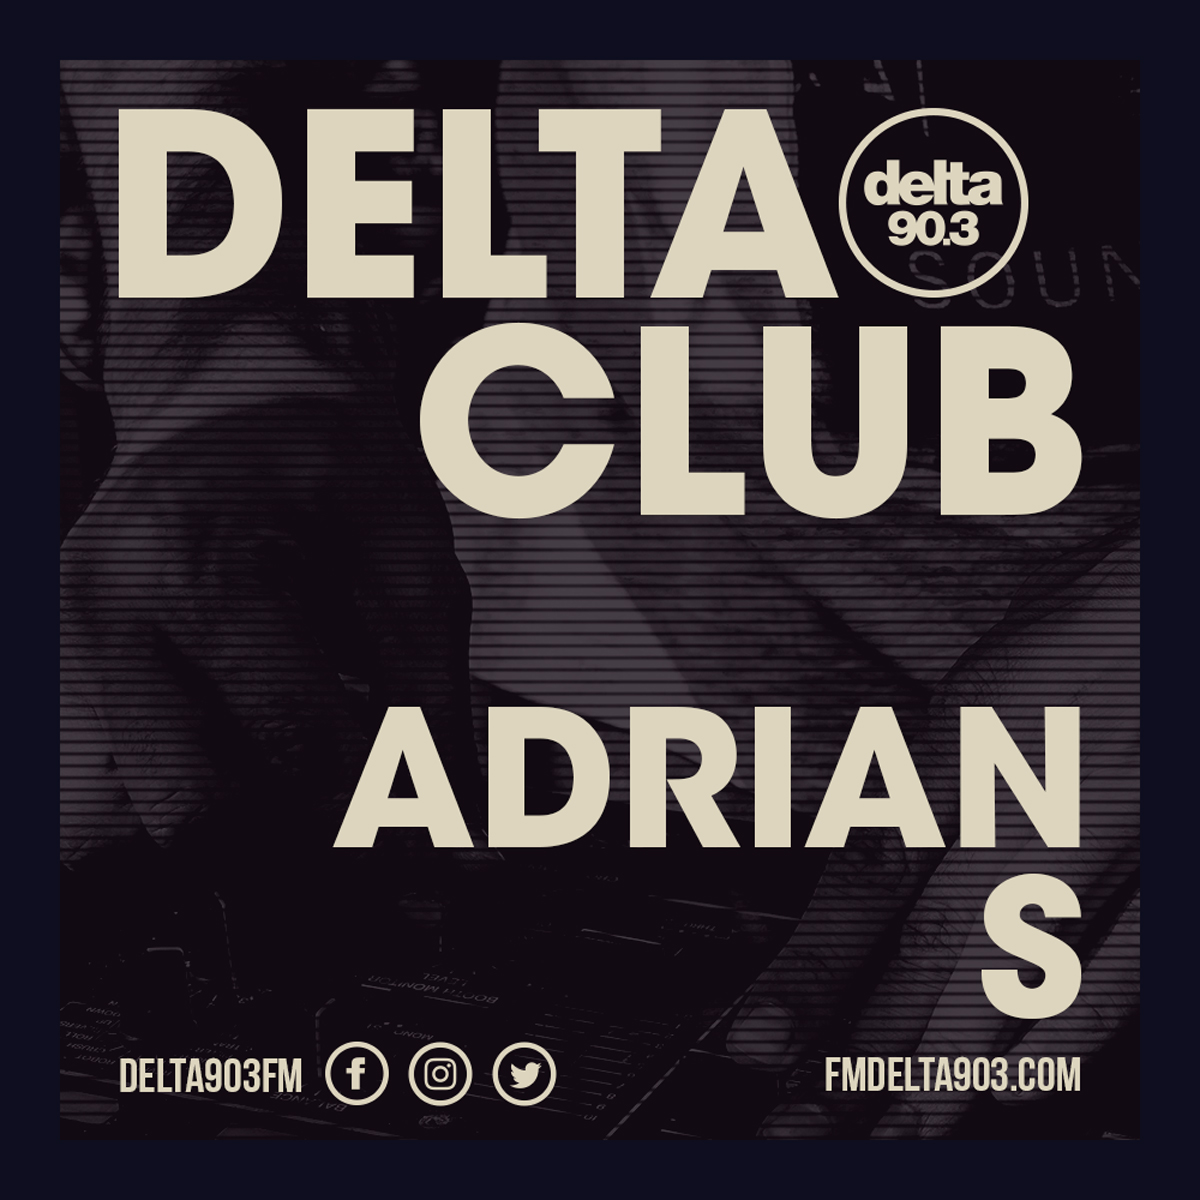 Delta Podcasts - Delta Club presents Adrian S (02.07.2018)